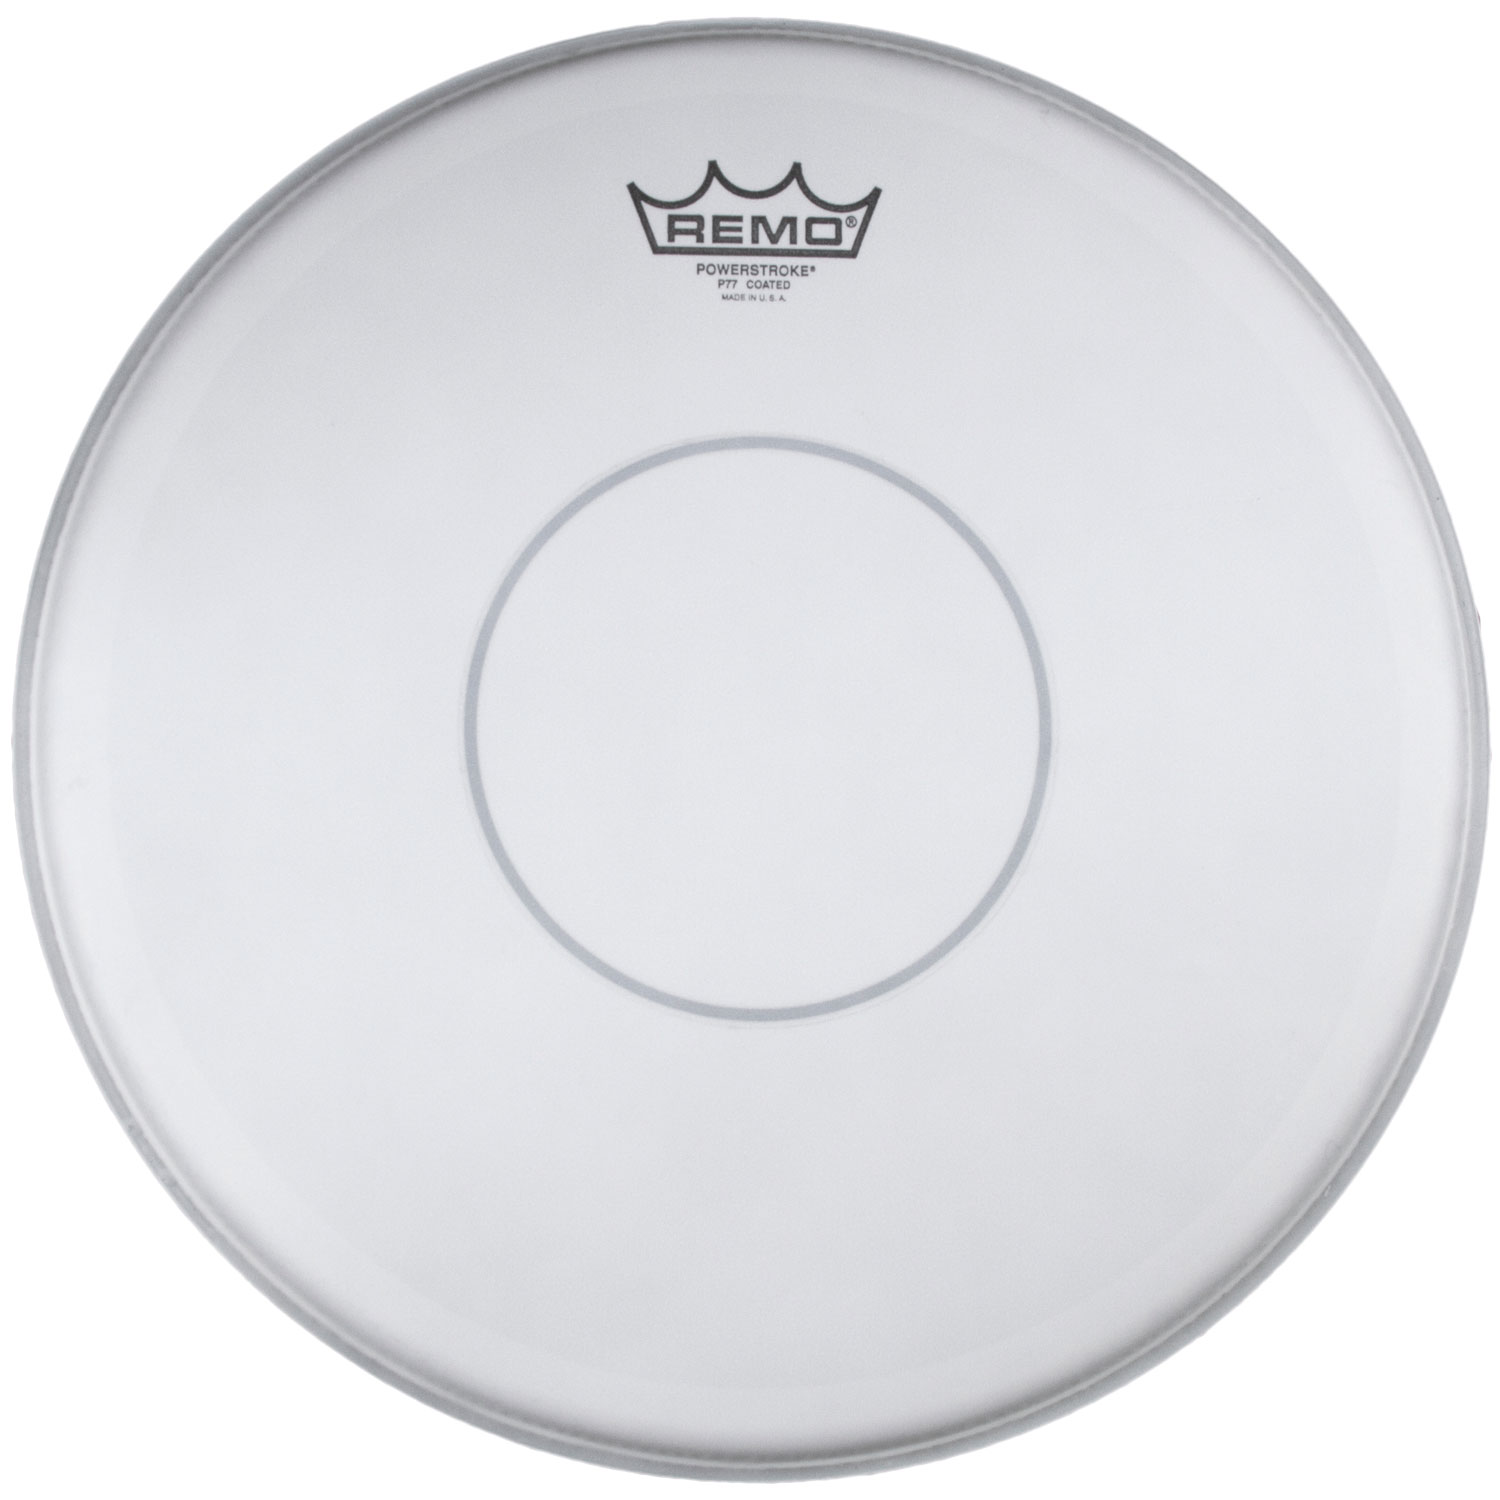 "Remo 14"" Powerstroke 77 Coated Drum Head with Clear Dot"